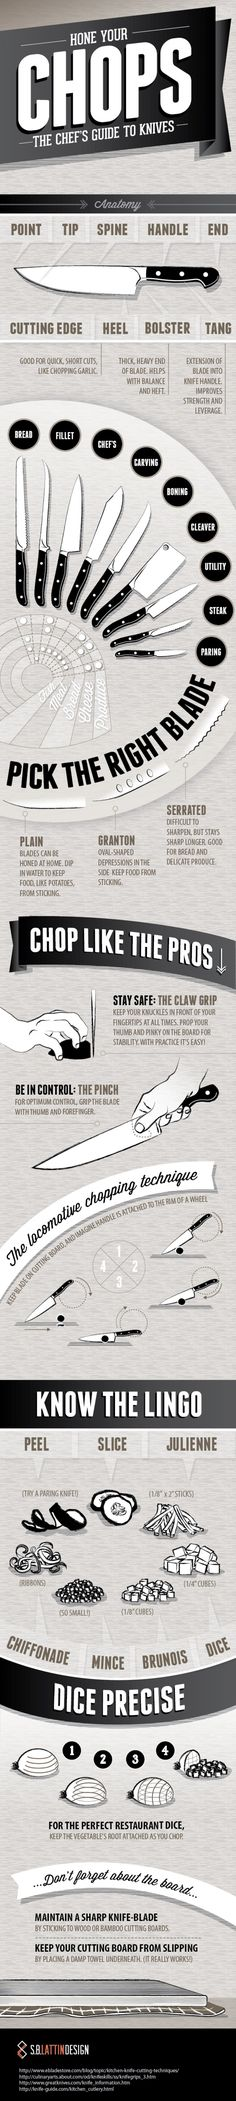 Beginners Guides to Knives and Cutting >> https://www.finedininglovers.com/blog/food-drinks/what-knives-to-use/